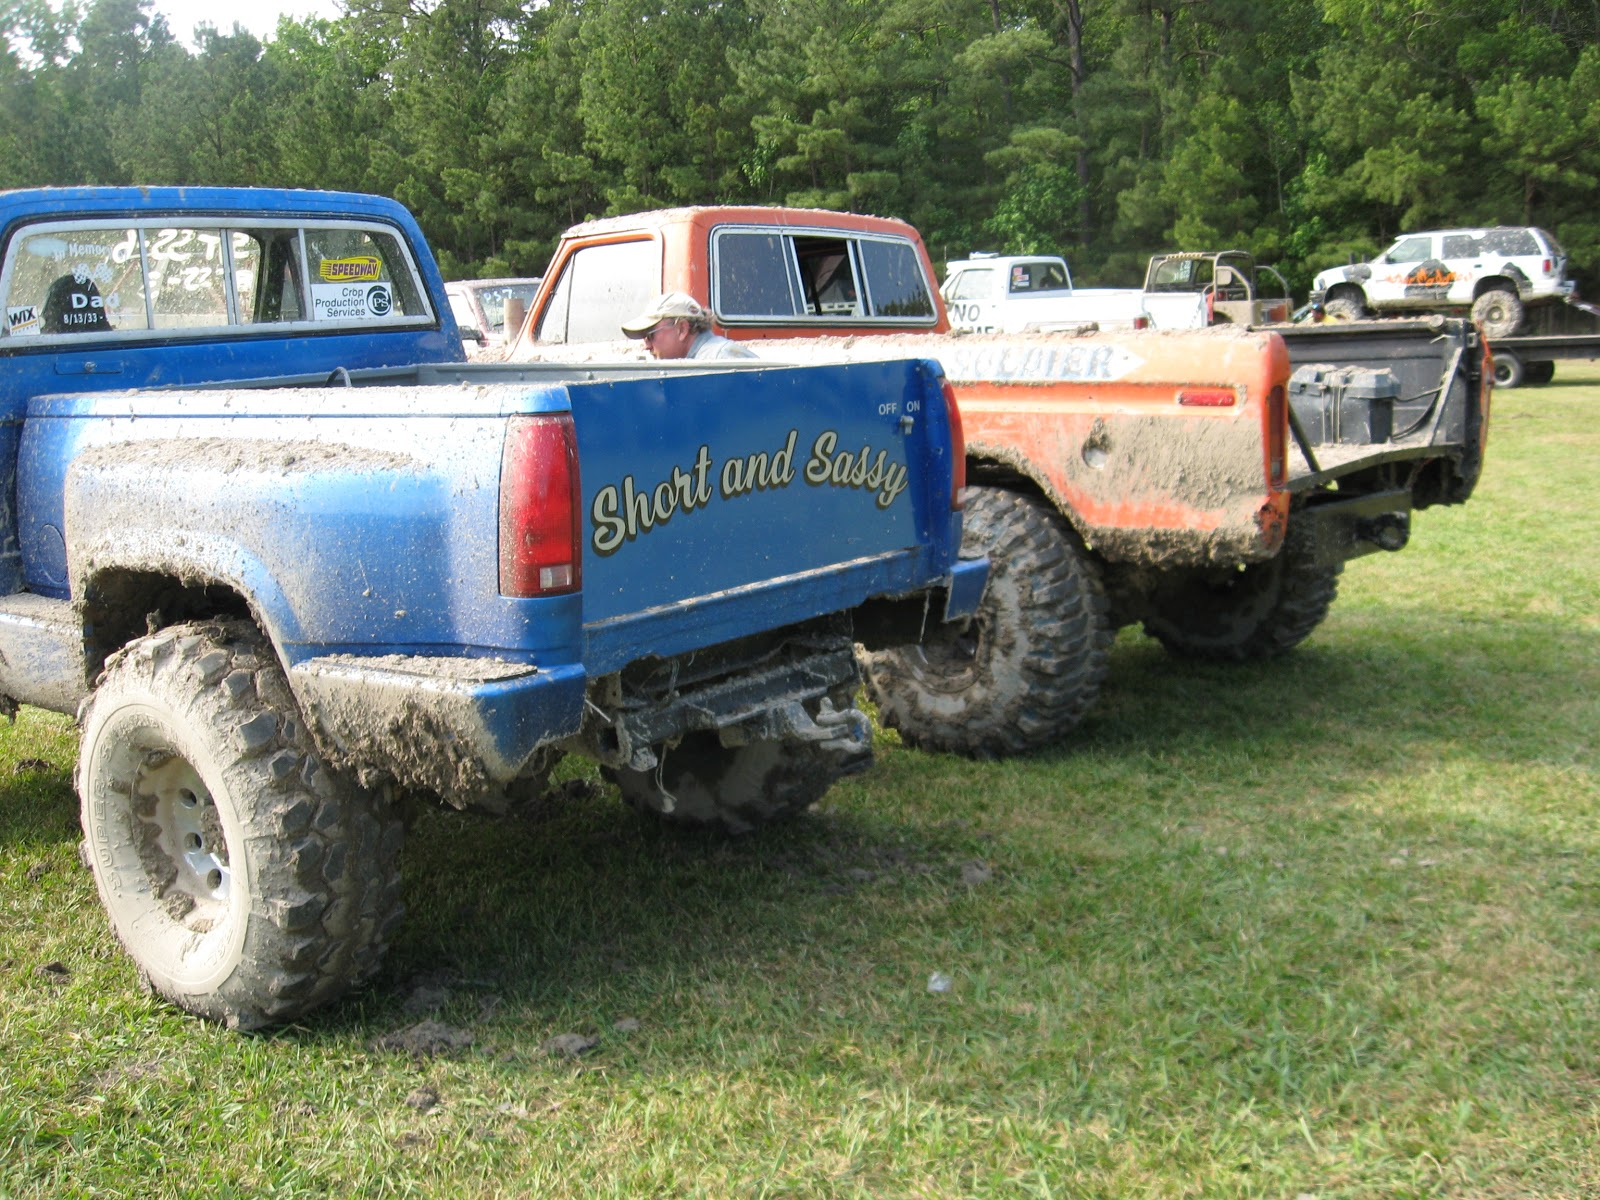 Mud Bogging Trucks For Sale Get your trucks ready.